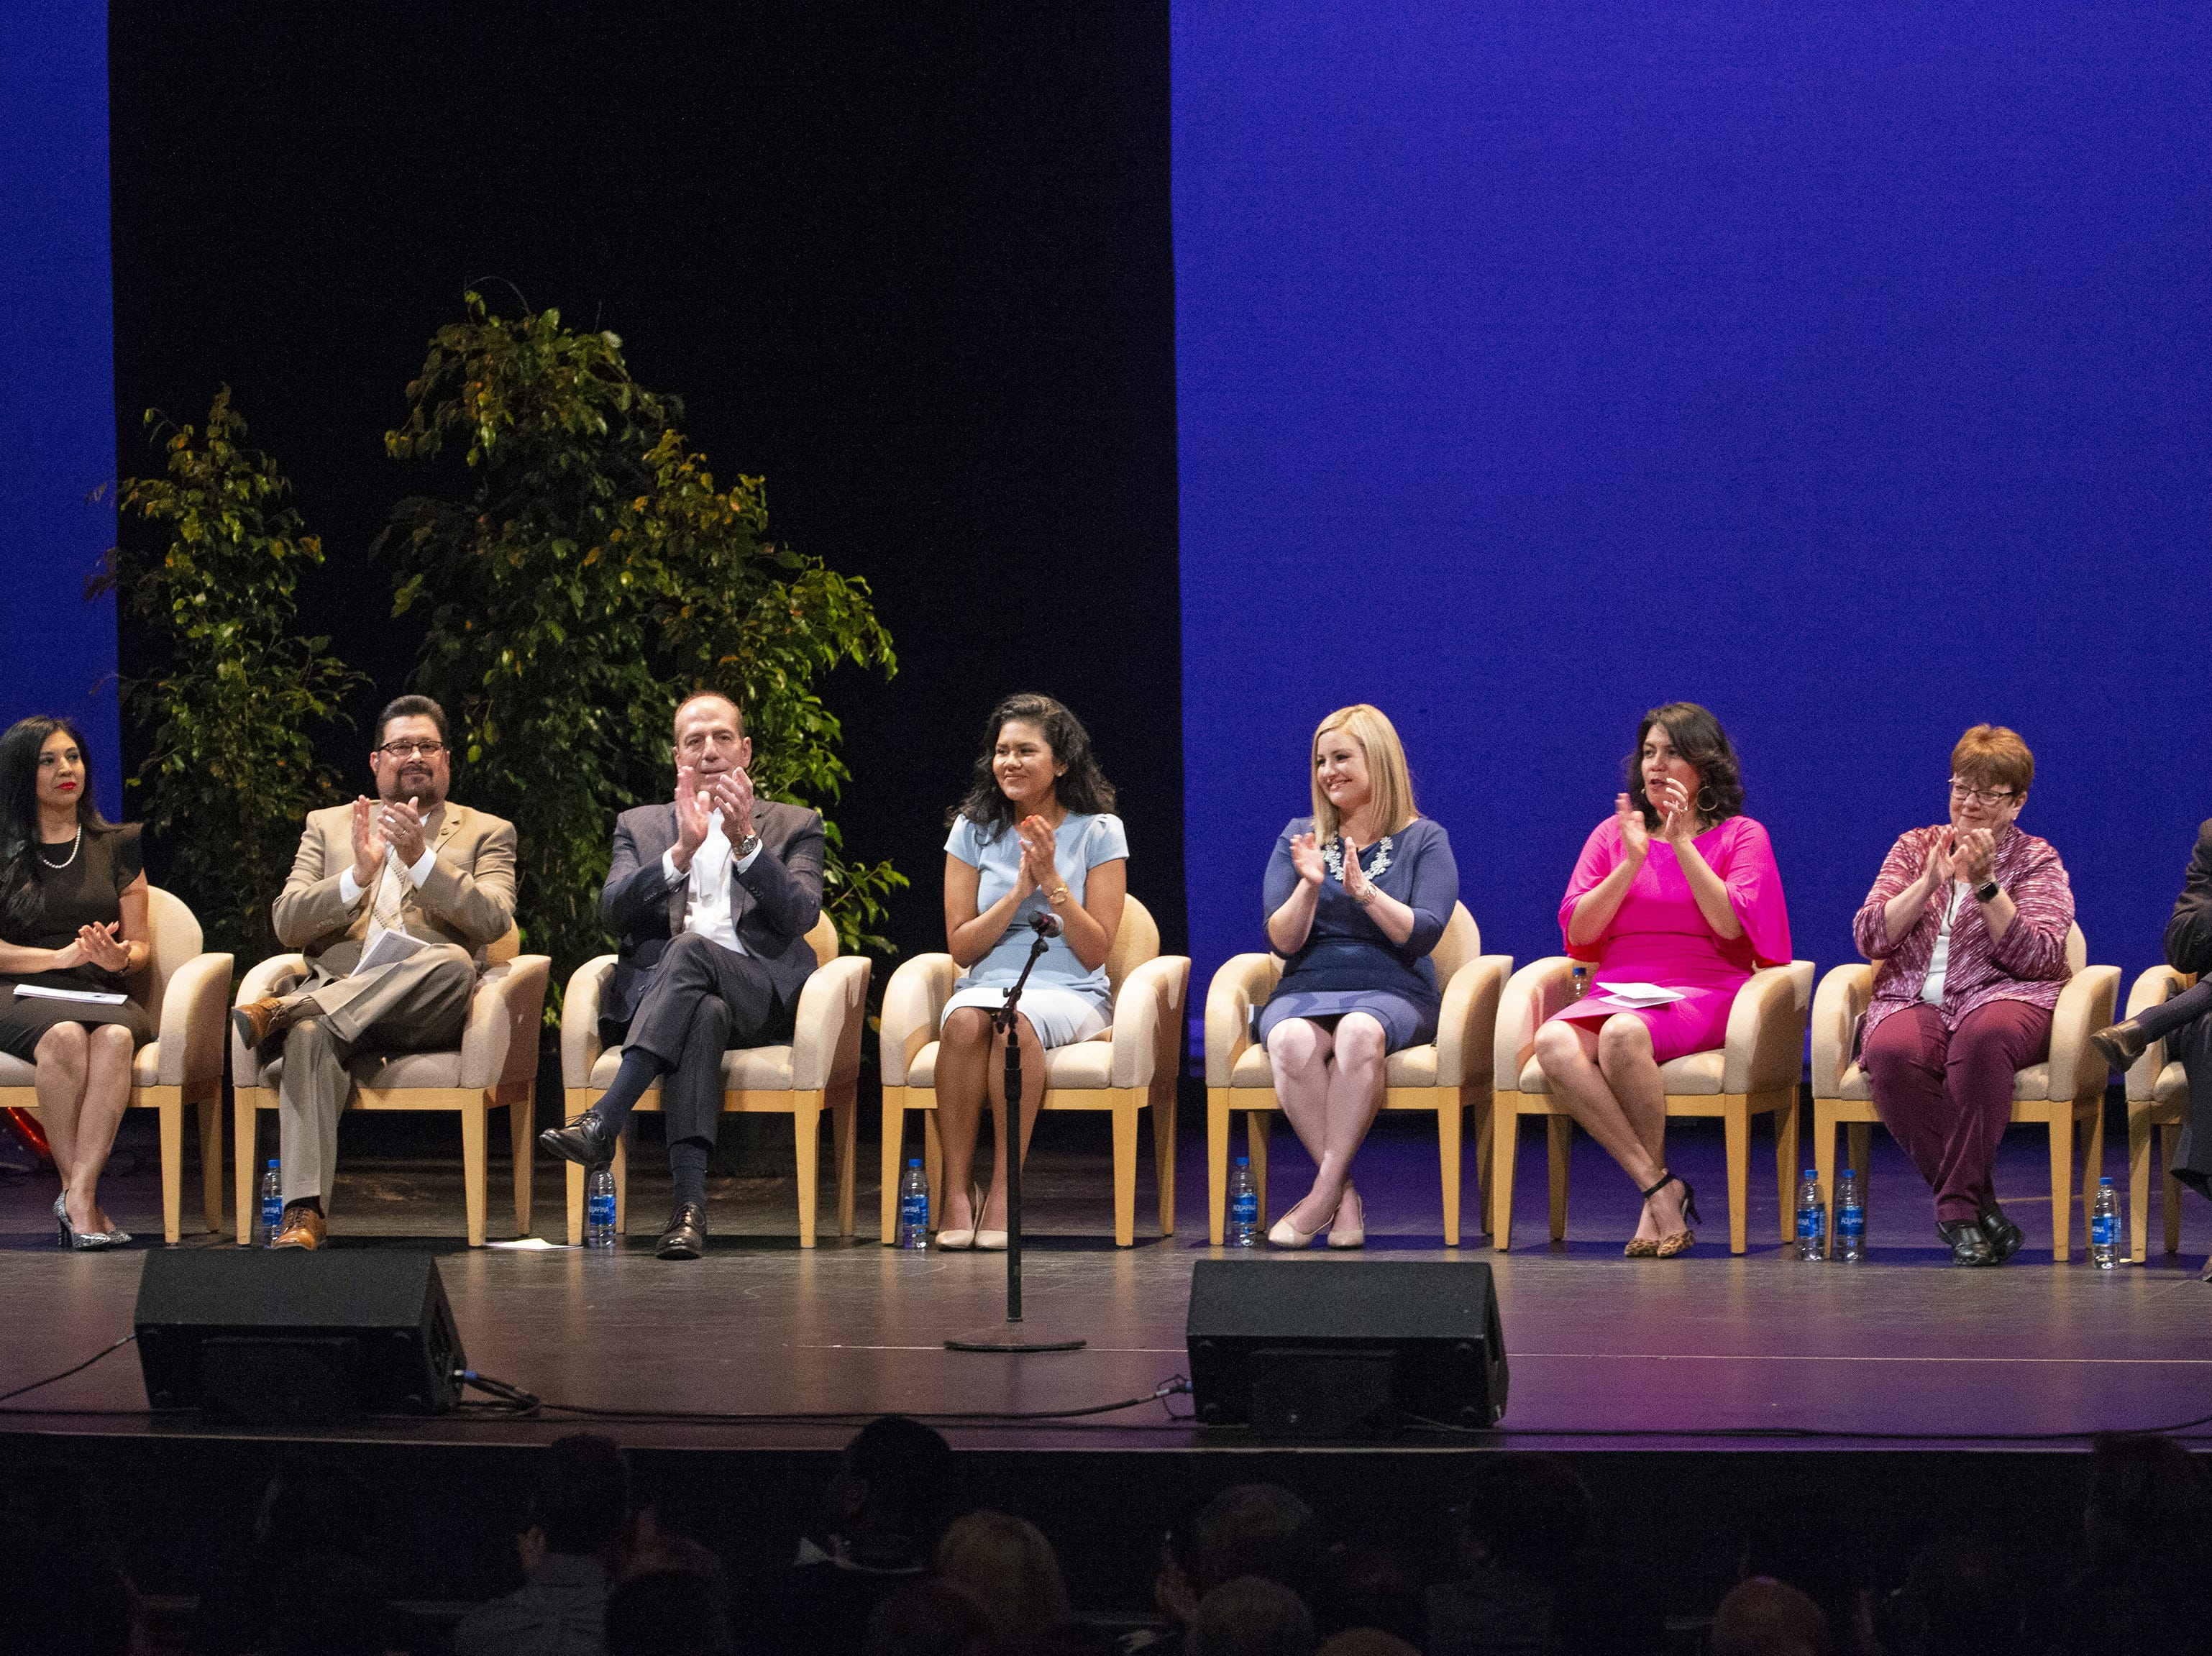 Kate Gallego (center right) and city council members sit onstage during Gallego's  inauguration ceremony as the new mayor of Phoenix on March 21 at the Orpheum Theatre in Phoenix, Ariz.